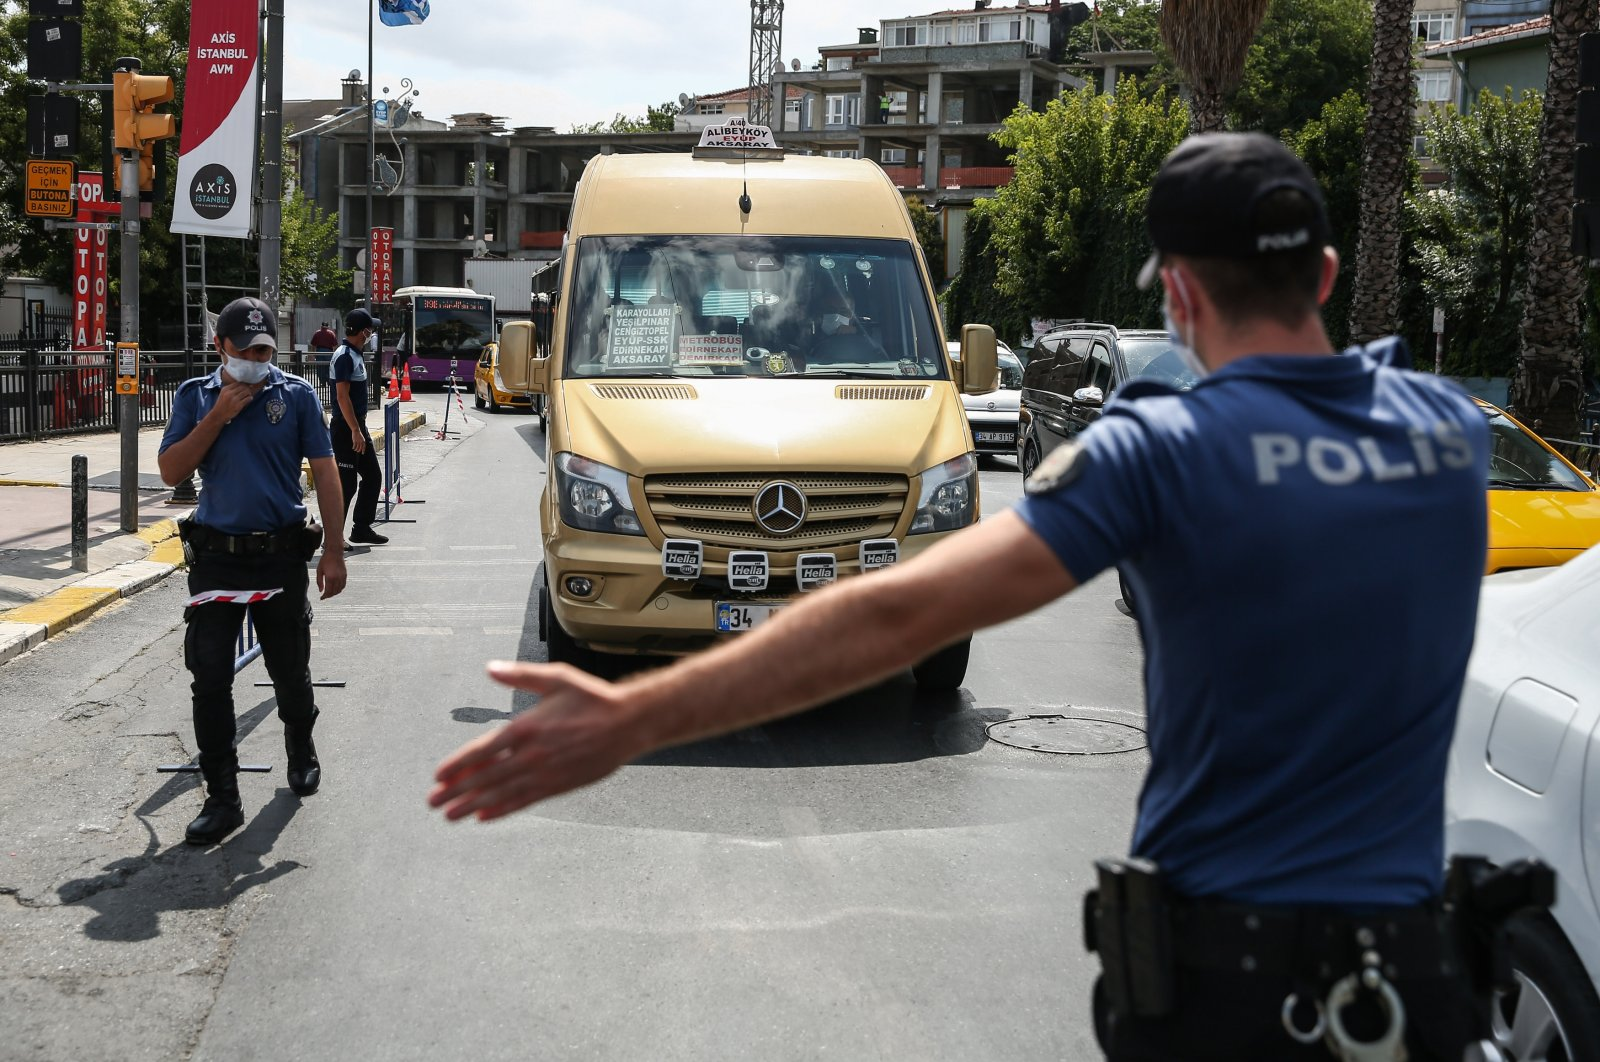 A police officer motions for a minibus to pull over to inspect for COVID-19 precautions, Istanbul, Turkey, Aug. 6, 2020. (DHA Photo)